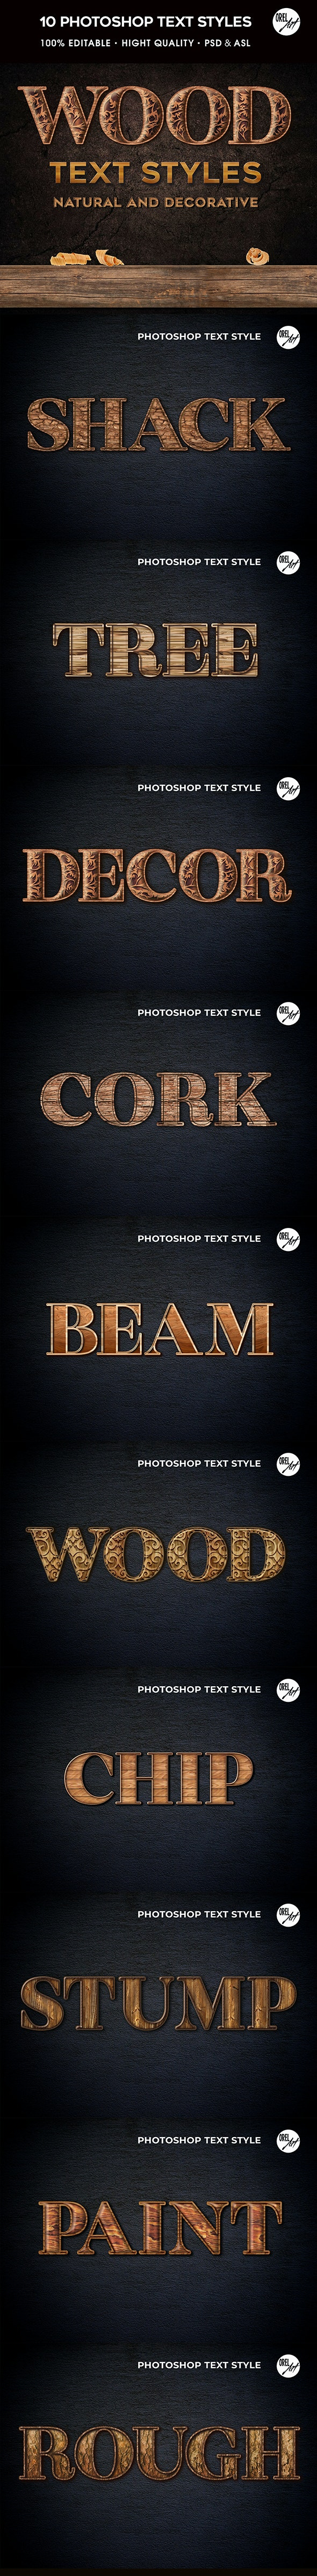 Wood Photoshop Styles - Text Effects Actions